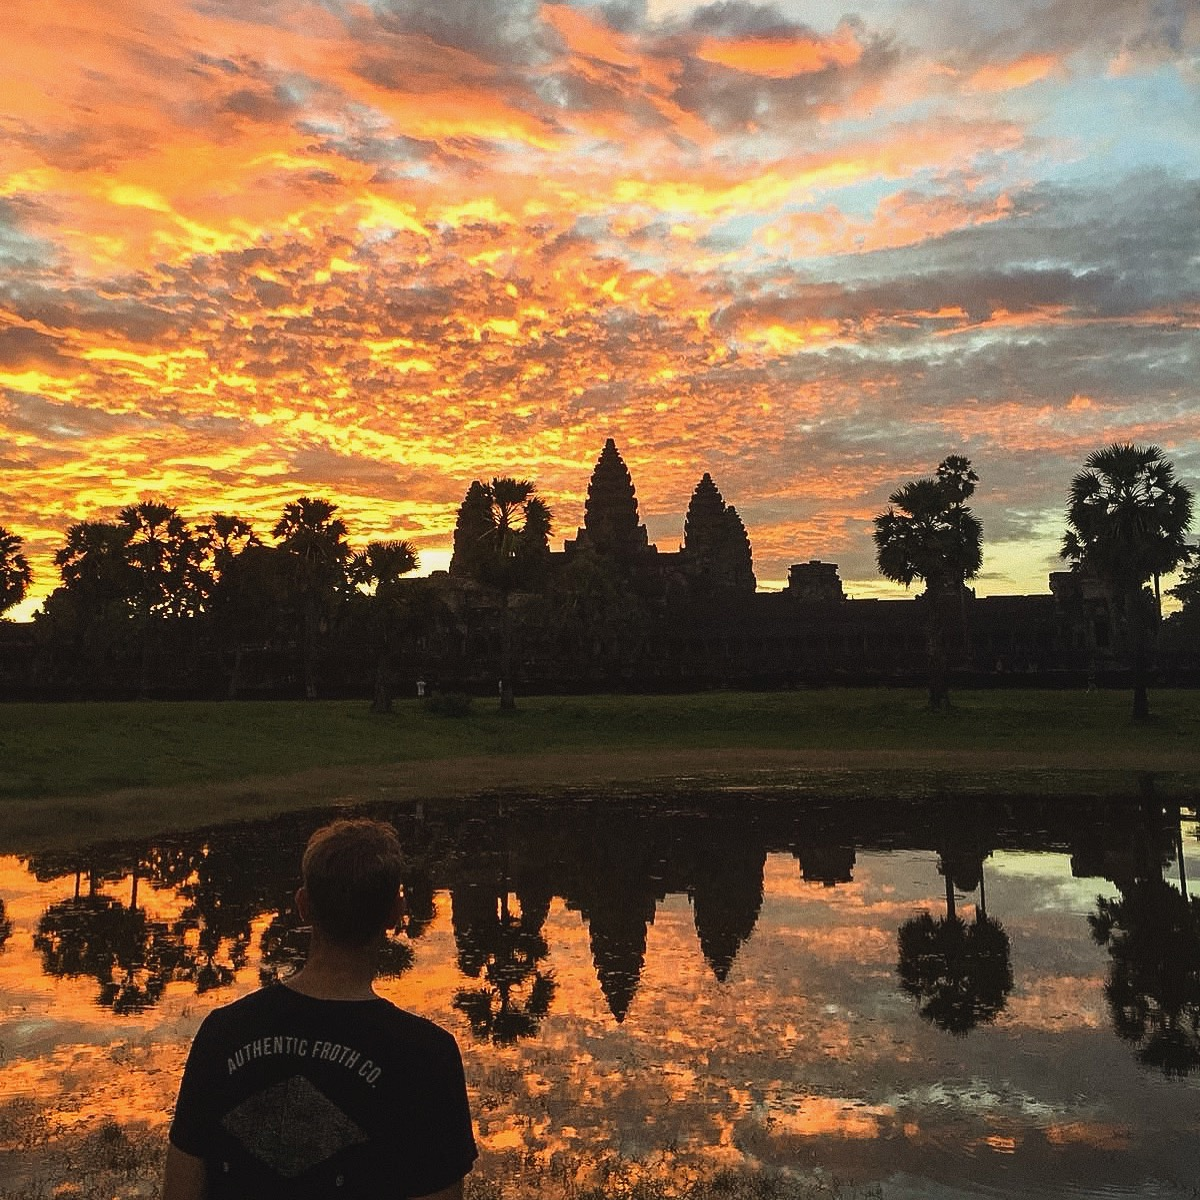 angkor wat sunrise tour cambodia, angkor wat entrance fee